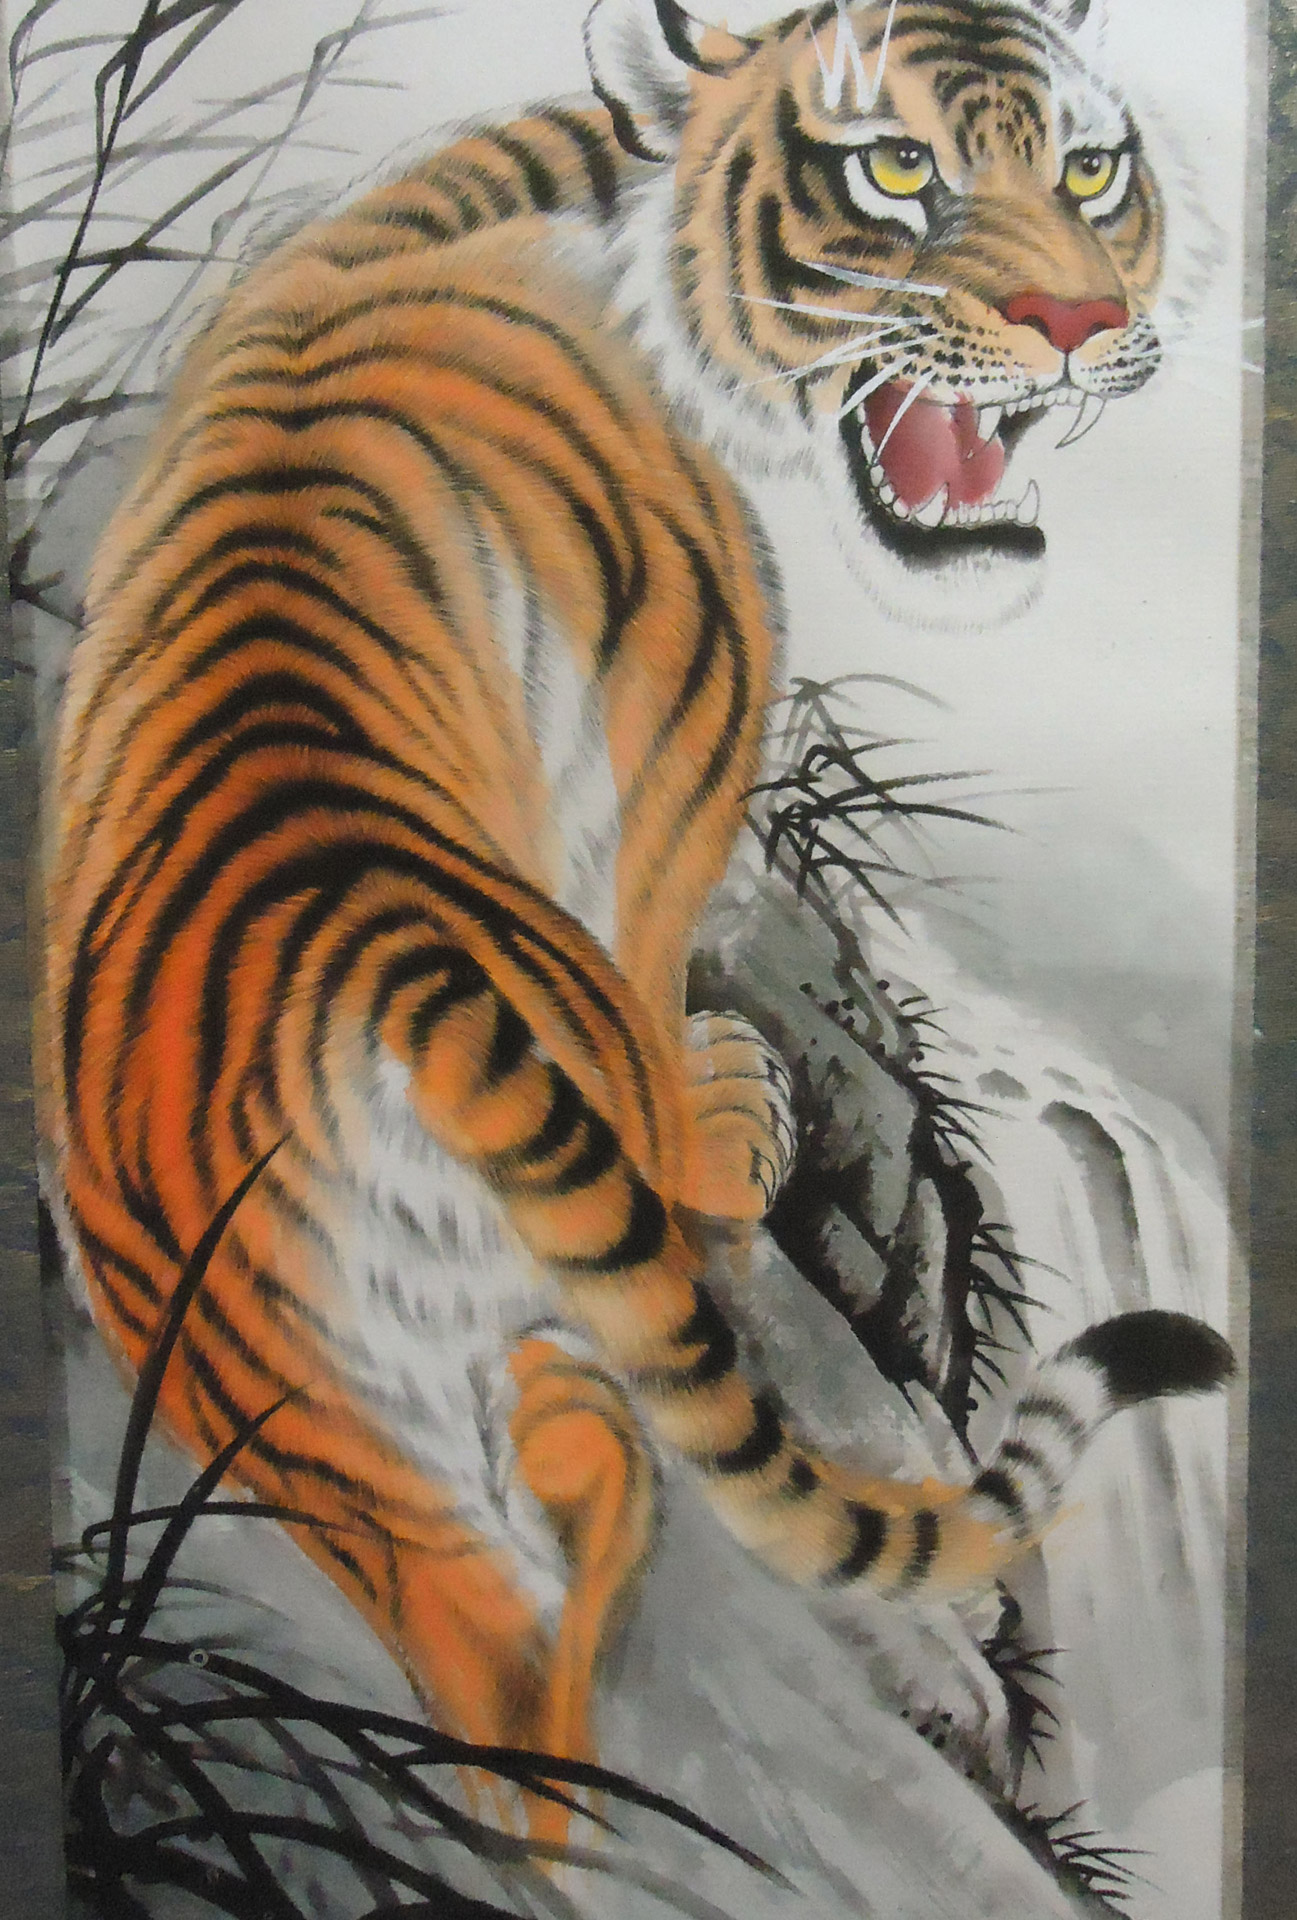 Chinese Style Tiger Art Free Stock Photo Public Domain